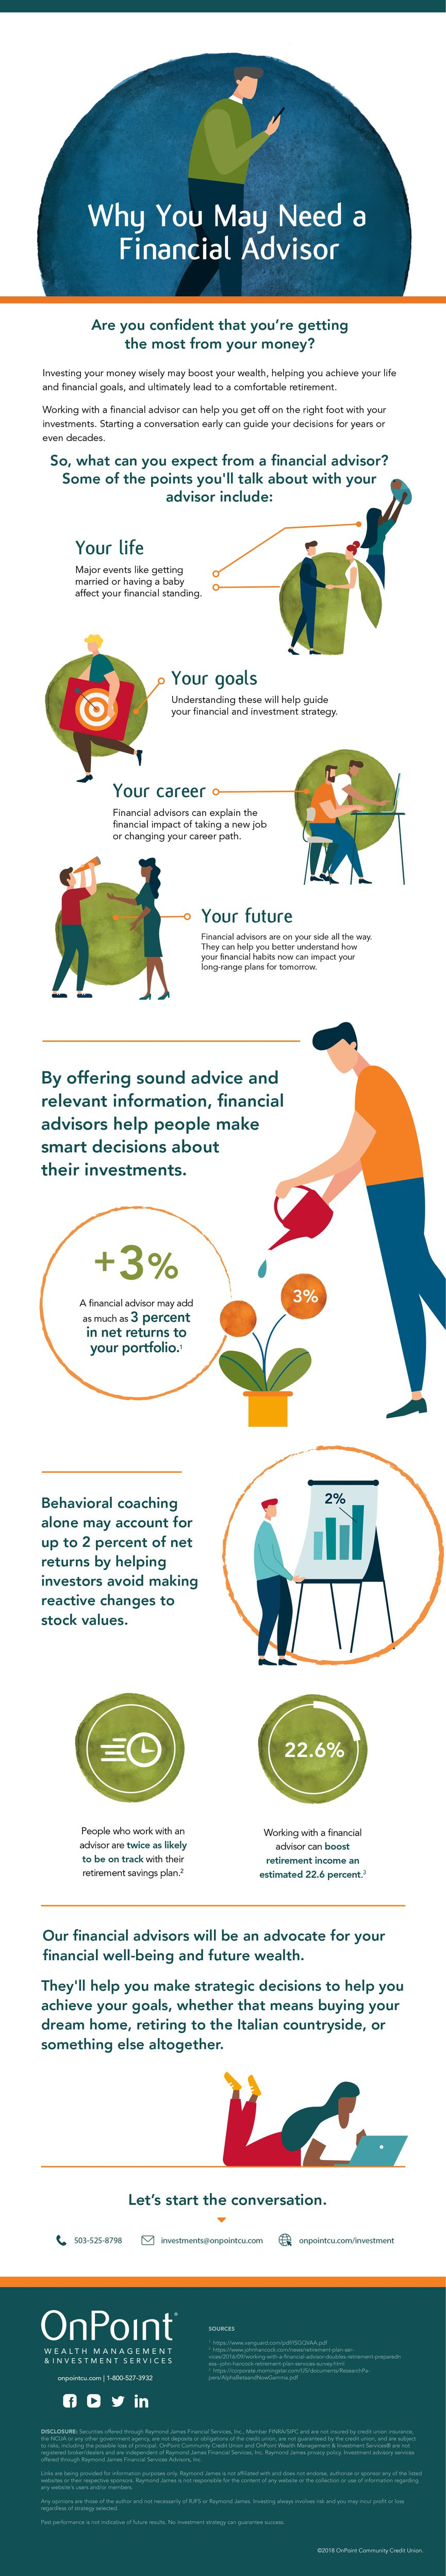 Why-You-Need-a-Financial-Advisor---OnPoint-Community-Credit-Union-Infographic_for-blog_full-width-image-min